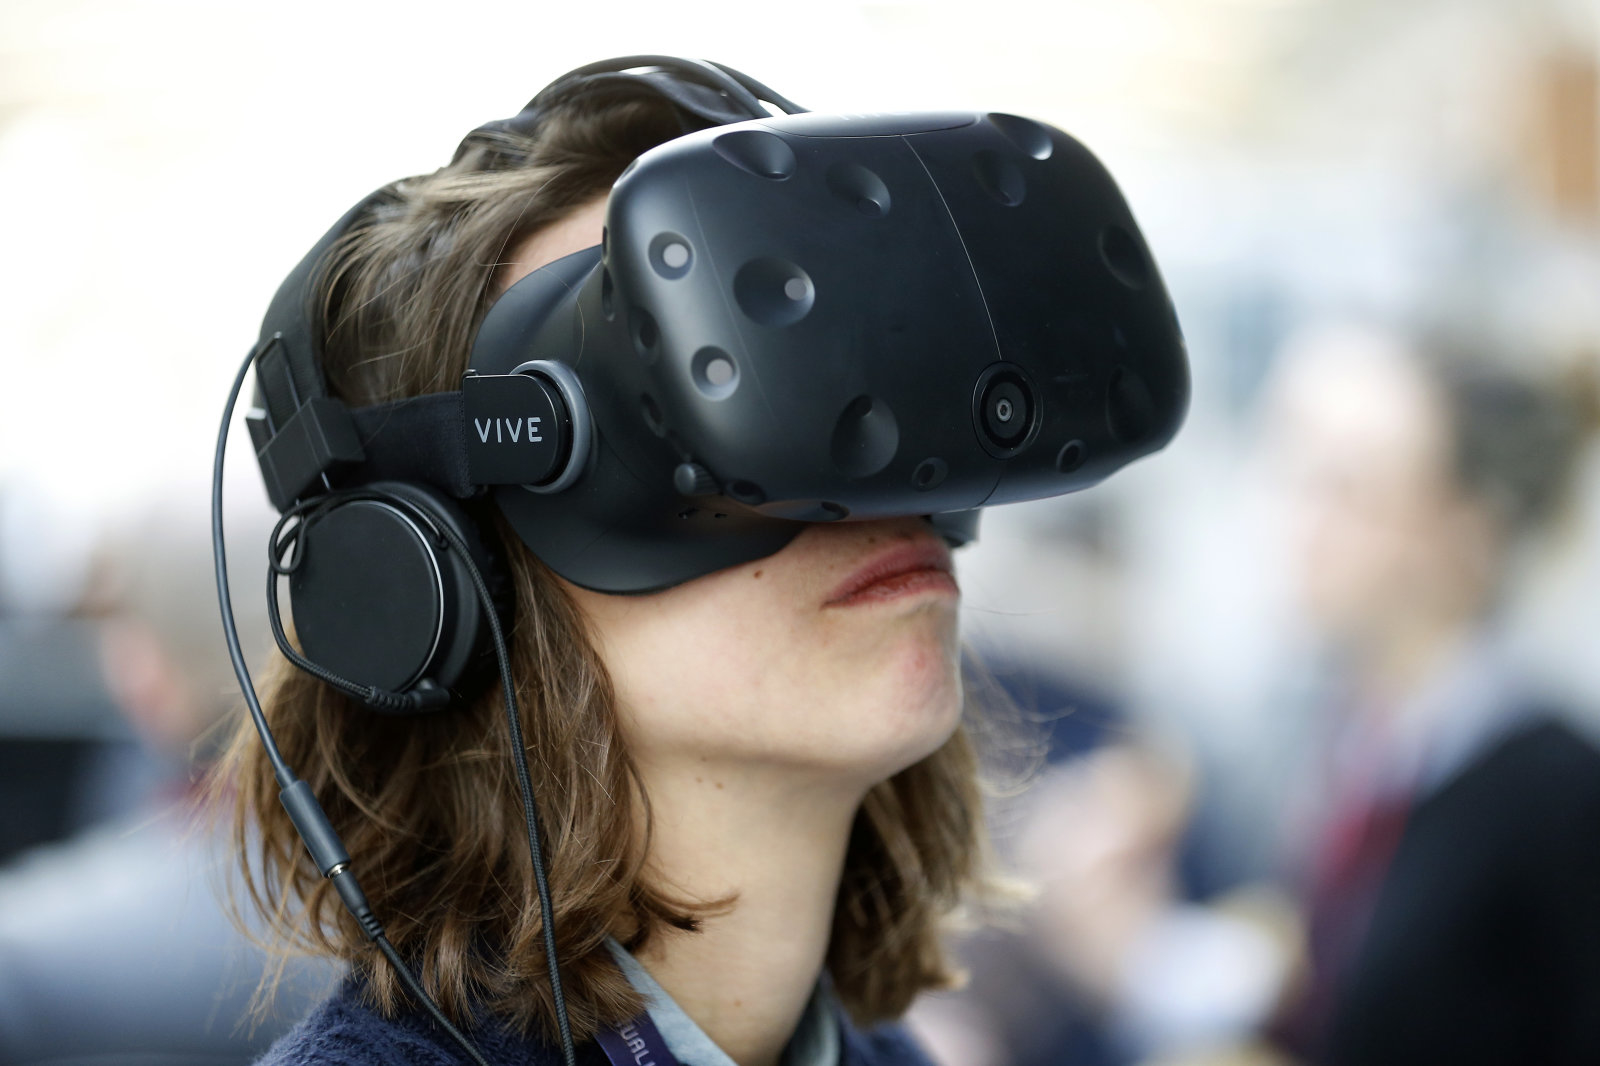 PARIS, FRANCE - FEBRUARY 08:  An visitor wears a Vive virtual reality (VR) headset, manufactured by HTC Corp during the 'Virtuality Paris 2018' show on February 08, 2018 in Paris, France. The second edition of Virtuality Paris, the virtual reality fair, will be held in Paris from 08 to 10 February 2018  (Photo by Chesnot/Getty Images)